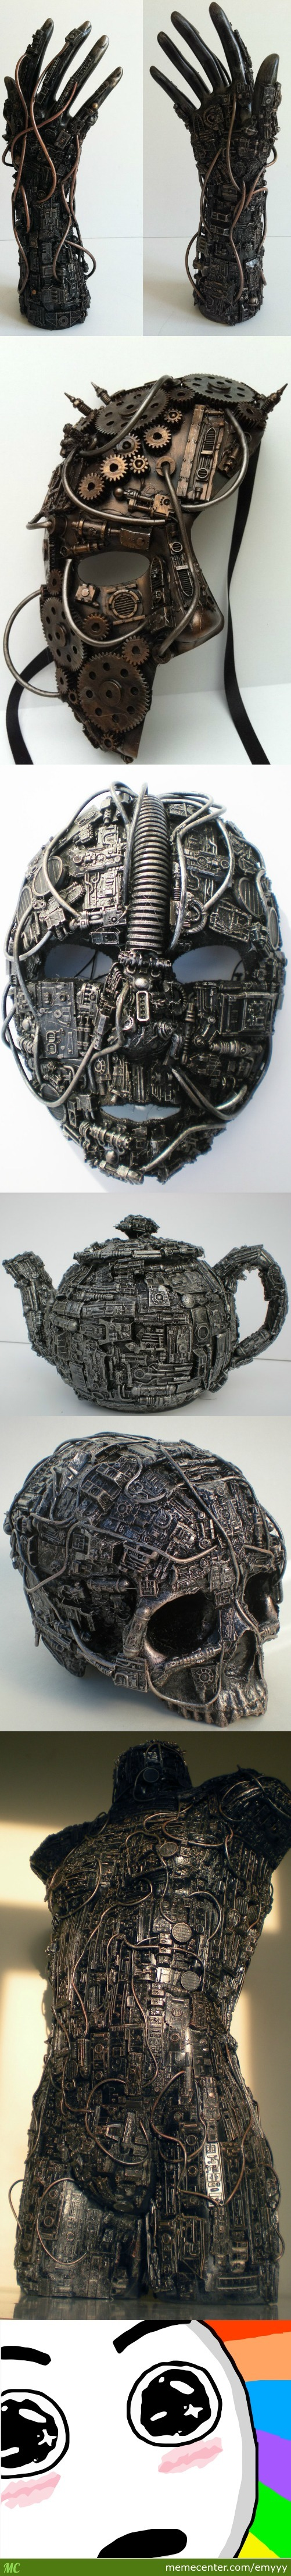 Awesome Techno Sculpture By Richard Symons